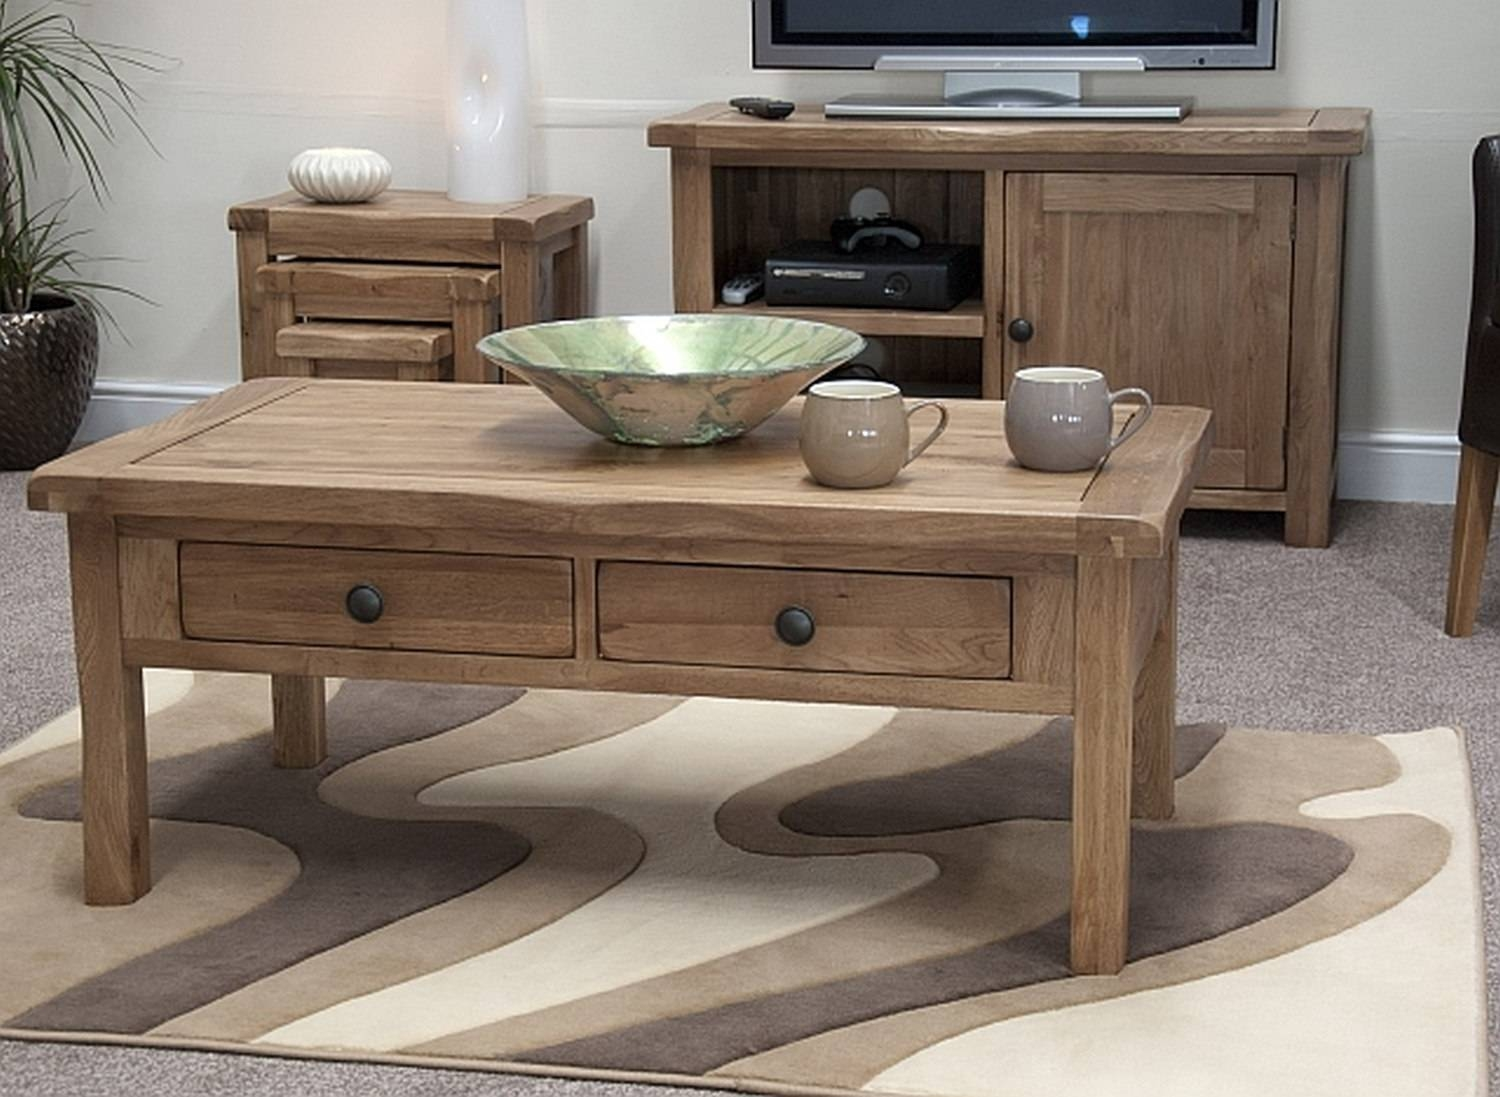 Rustic Wood Coffee Table : Precious Of All Time Rustic Coffee throughout Rustic Wooden Coffee Tables (Image 10 of 15)